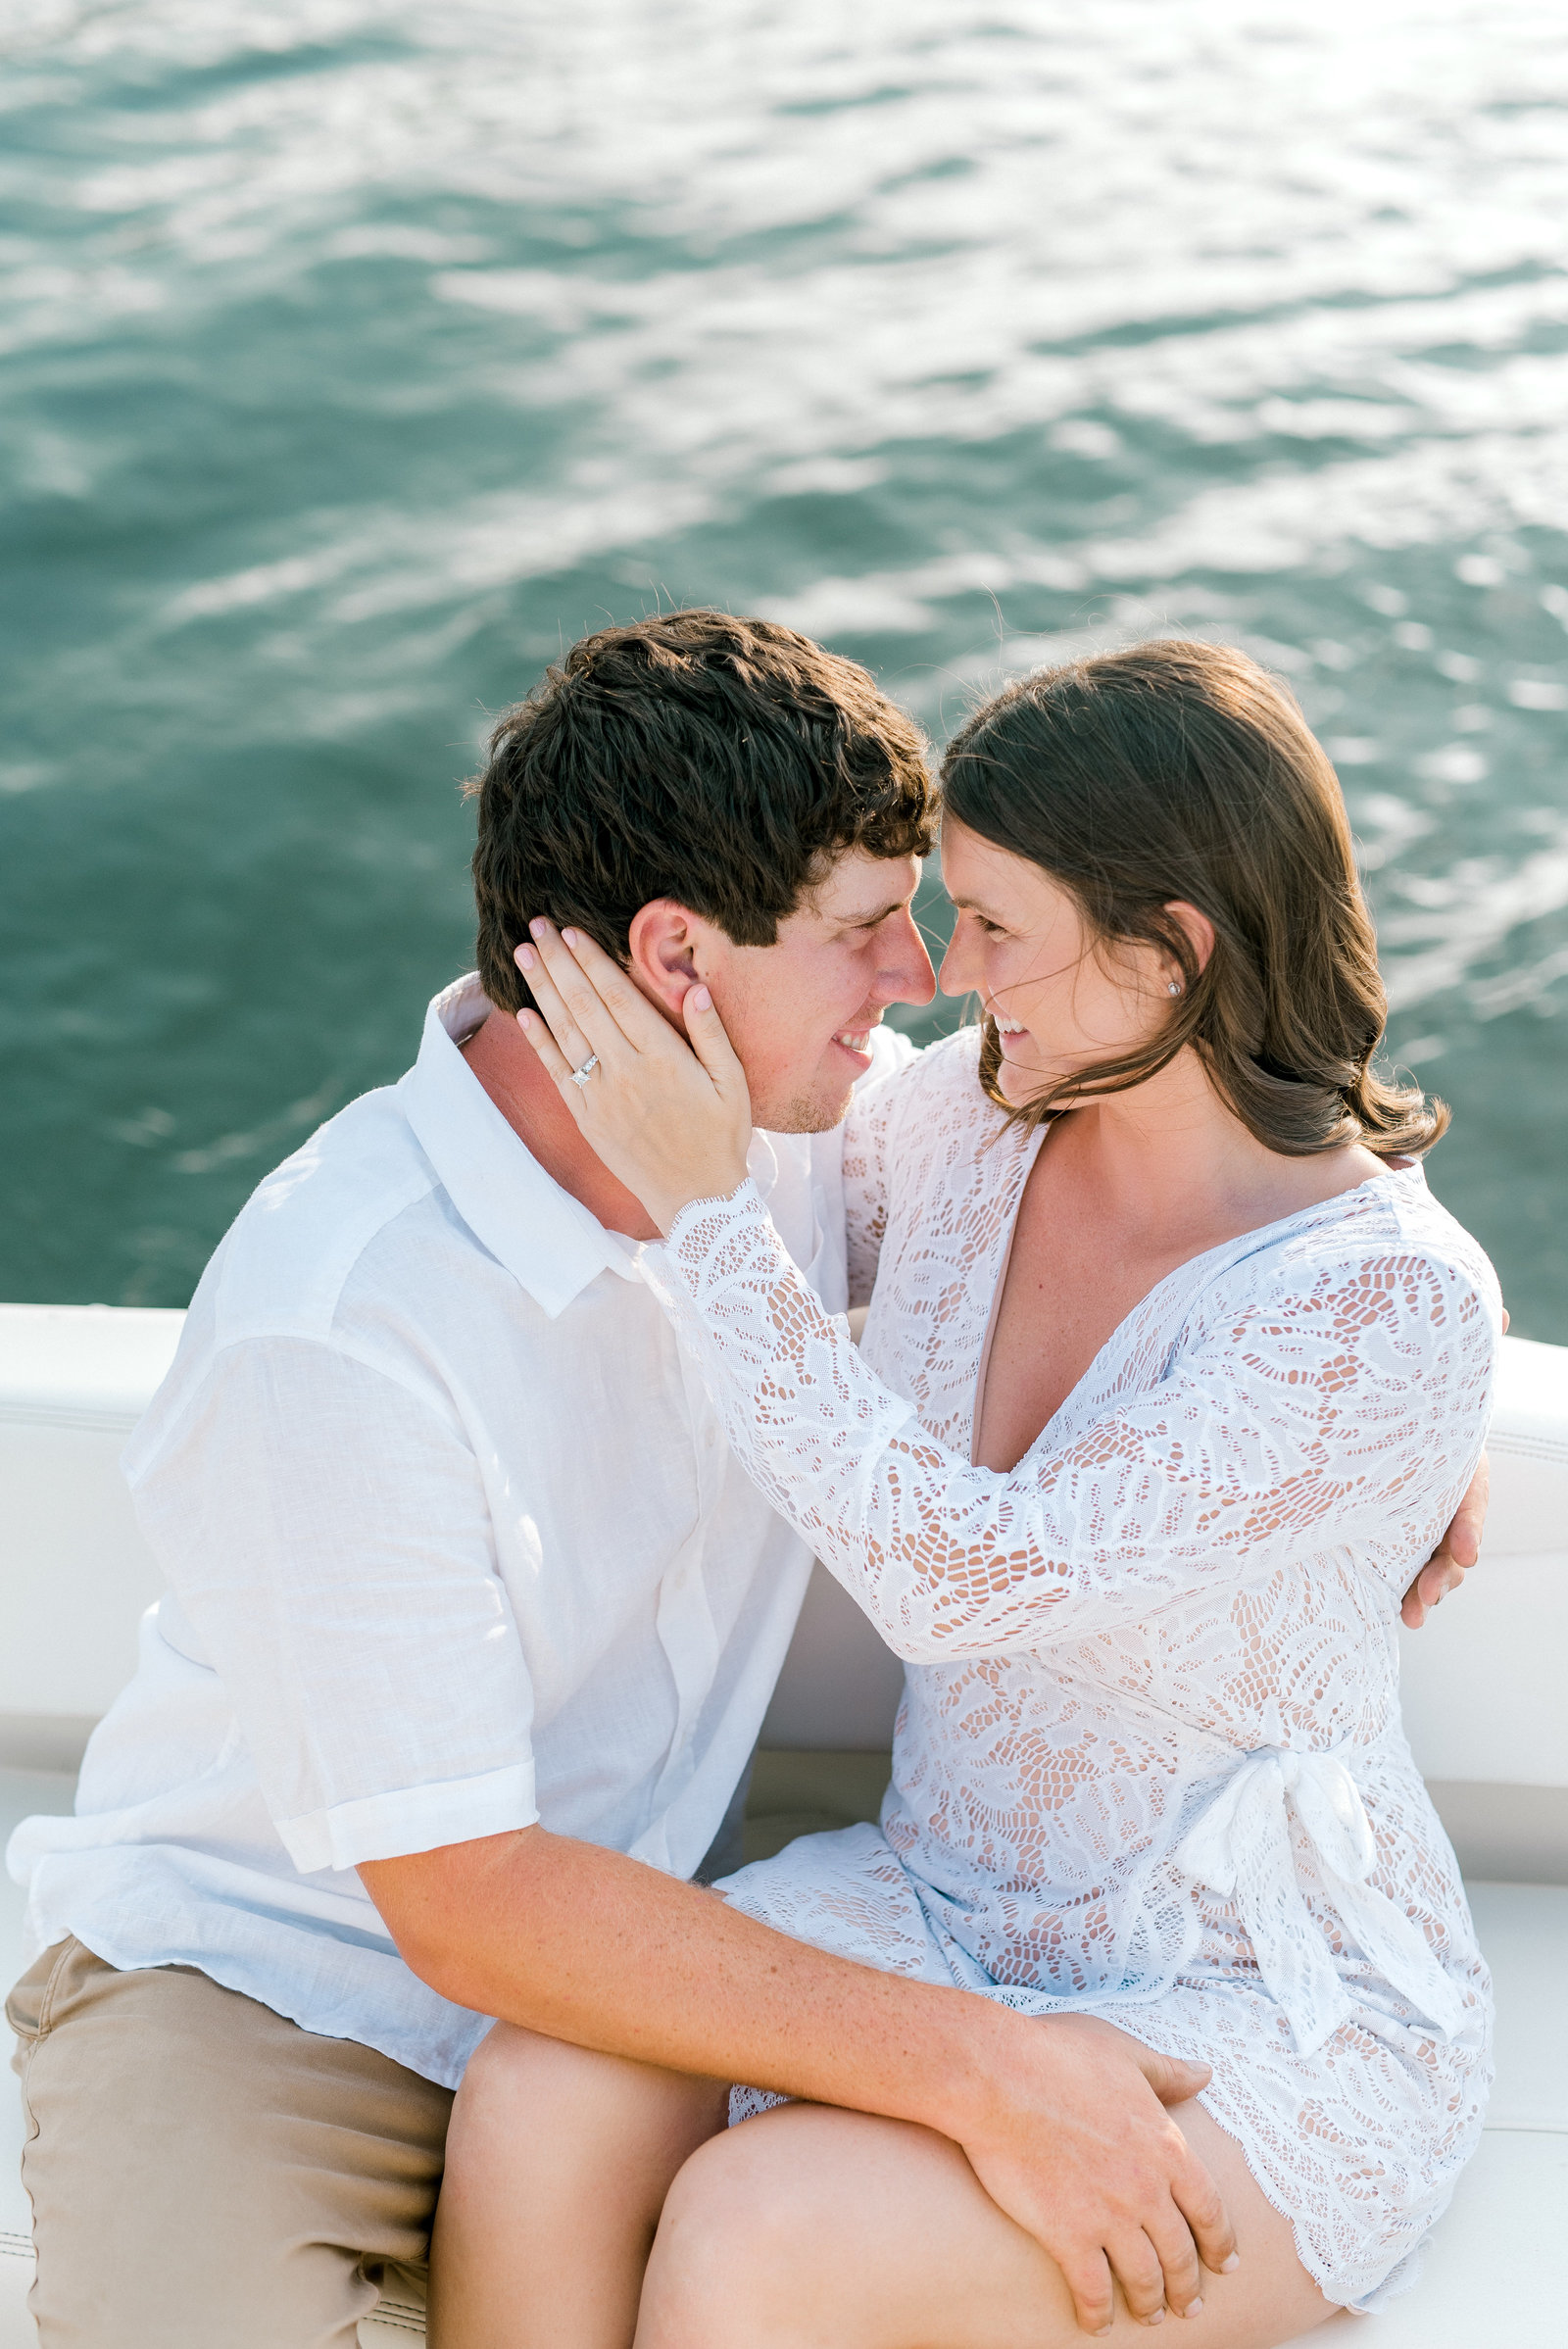 Chautauqua Lake Engagement Session